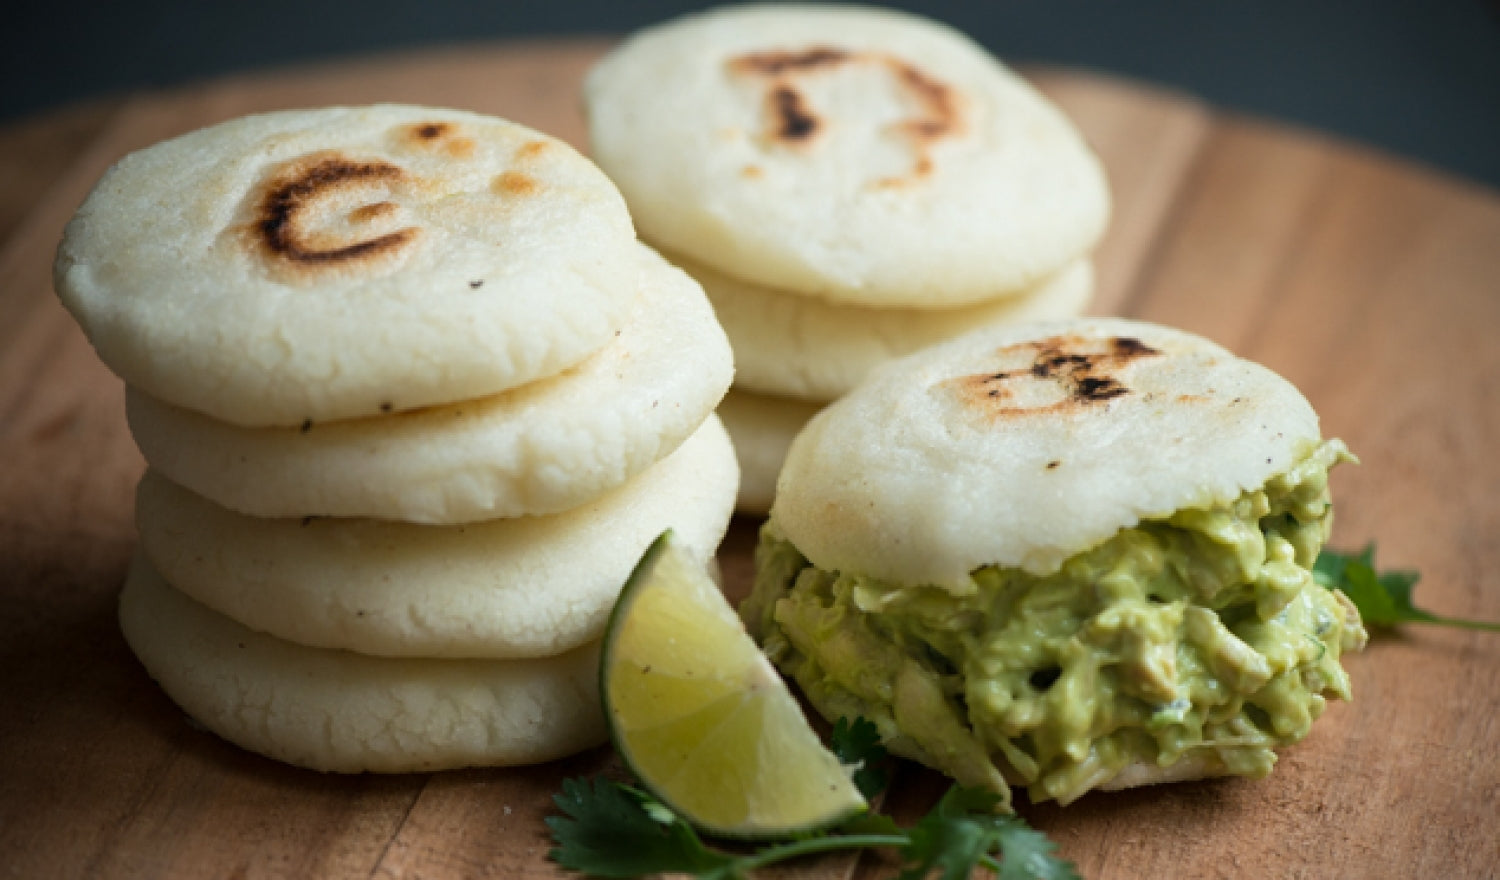 How To Make Arepas: Venezuela's Daily Bread Recipe